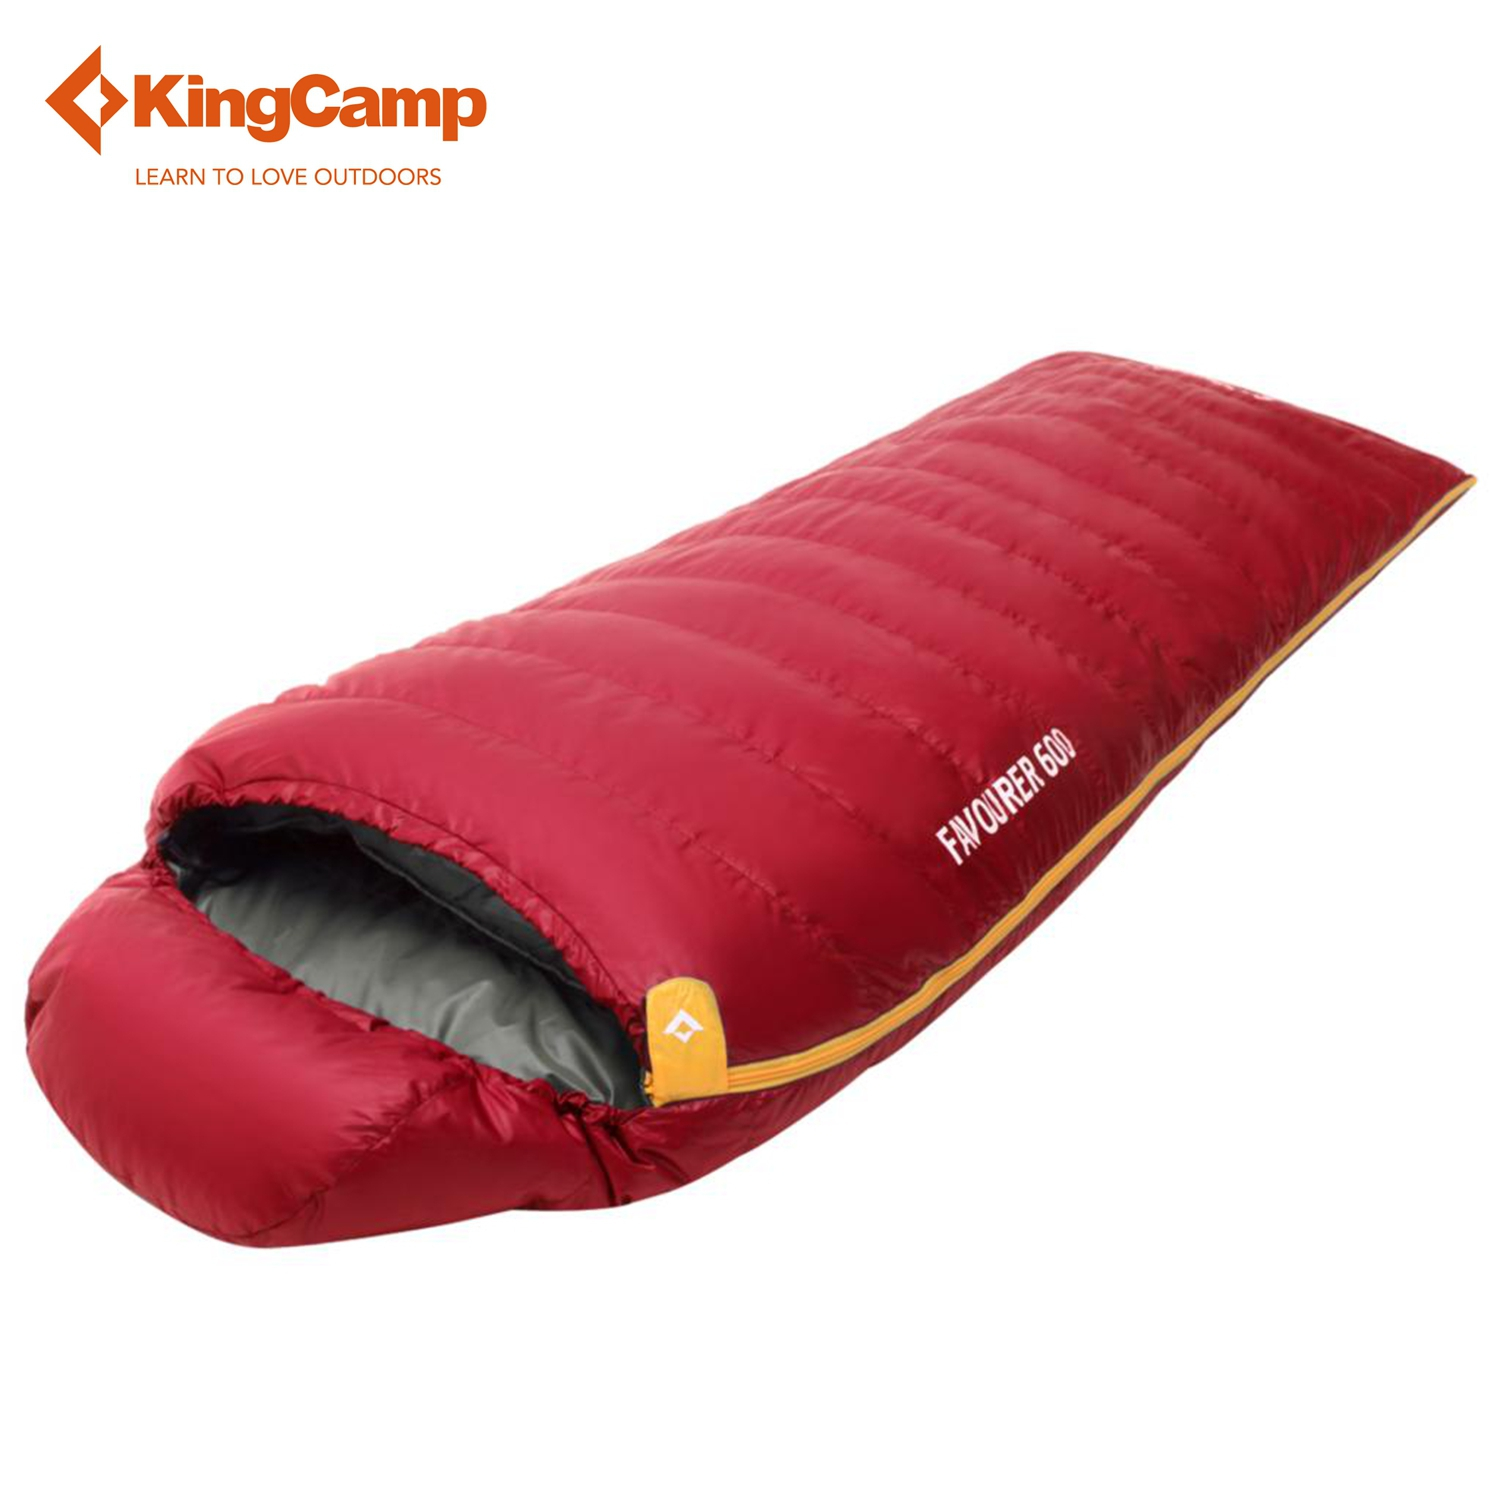 KingCamp Envelope Sleeping Bag for Outdoor Trekking Winter Down Sleeping Bag with Hood for Camping Hiking Five Colors creeper cr sl 002 outdoor envelope style camping sleeping bag w hood royalblue dark blue